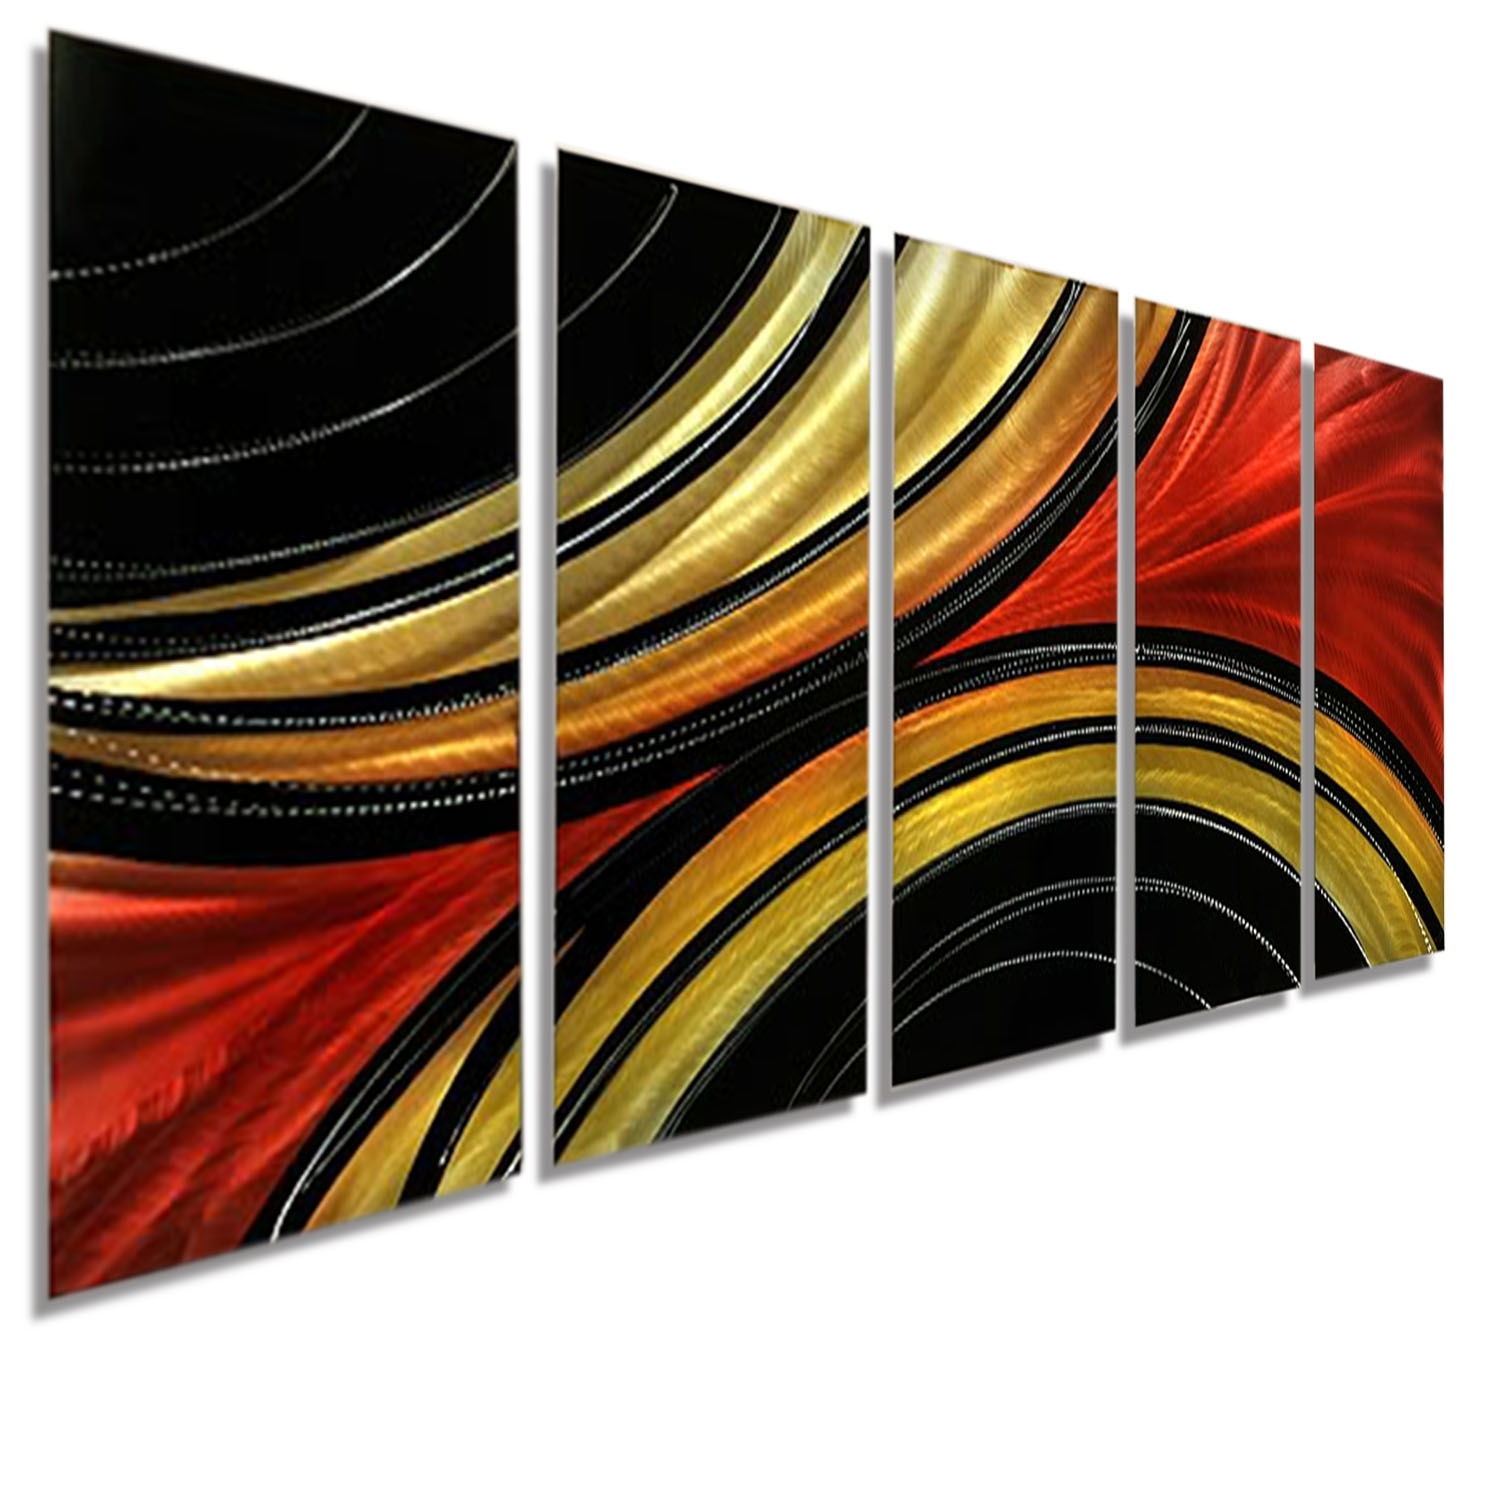 Solaris Xl – Massive Metal Abstract Red Black Gold Painting Wall Regarding Current Black And Gold Abstract Wall Art (View 10 of 20)